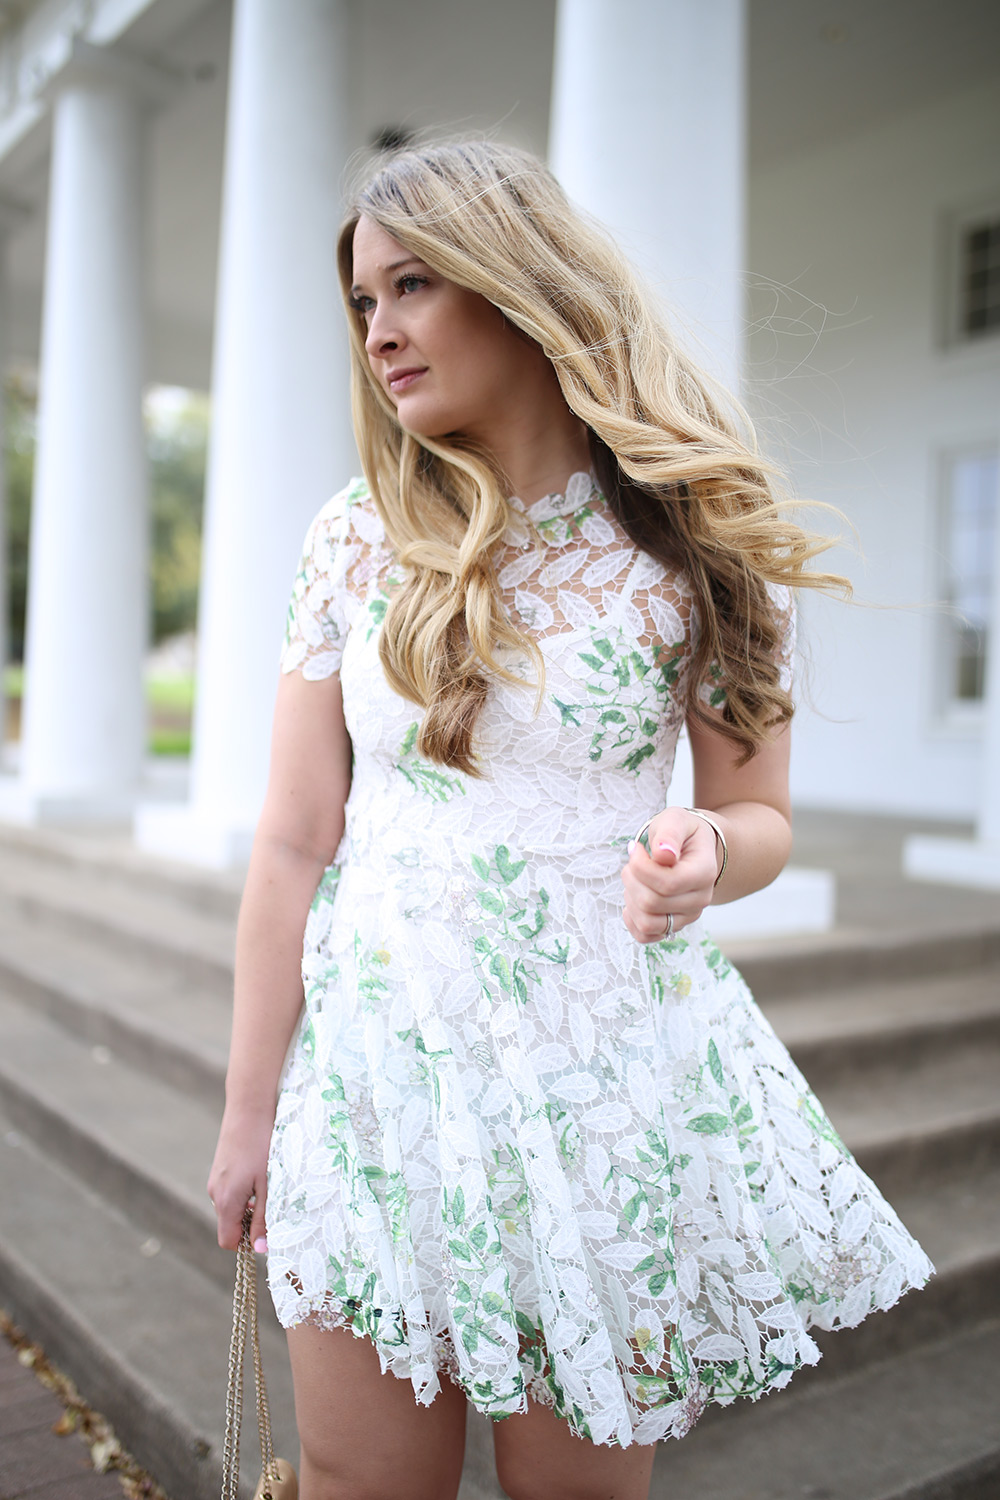 Dallas-fashion-blogger-Cameron-Proffitt-wears-dress-with-white-lace-overlay----chicwish-white-lace-dress----affordable-spring-outfit-4